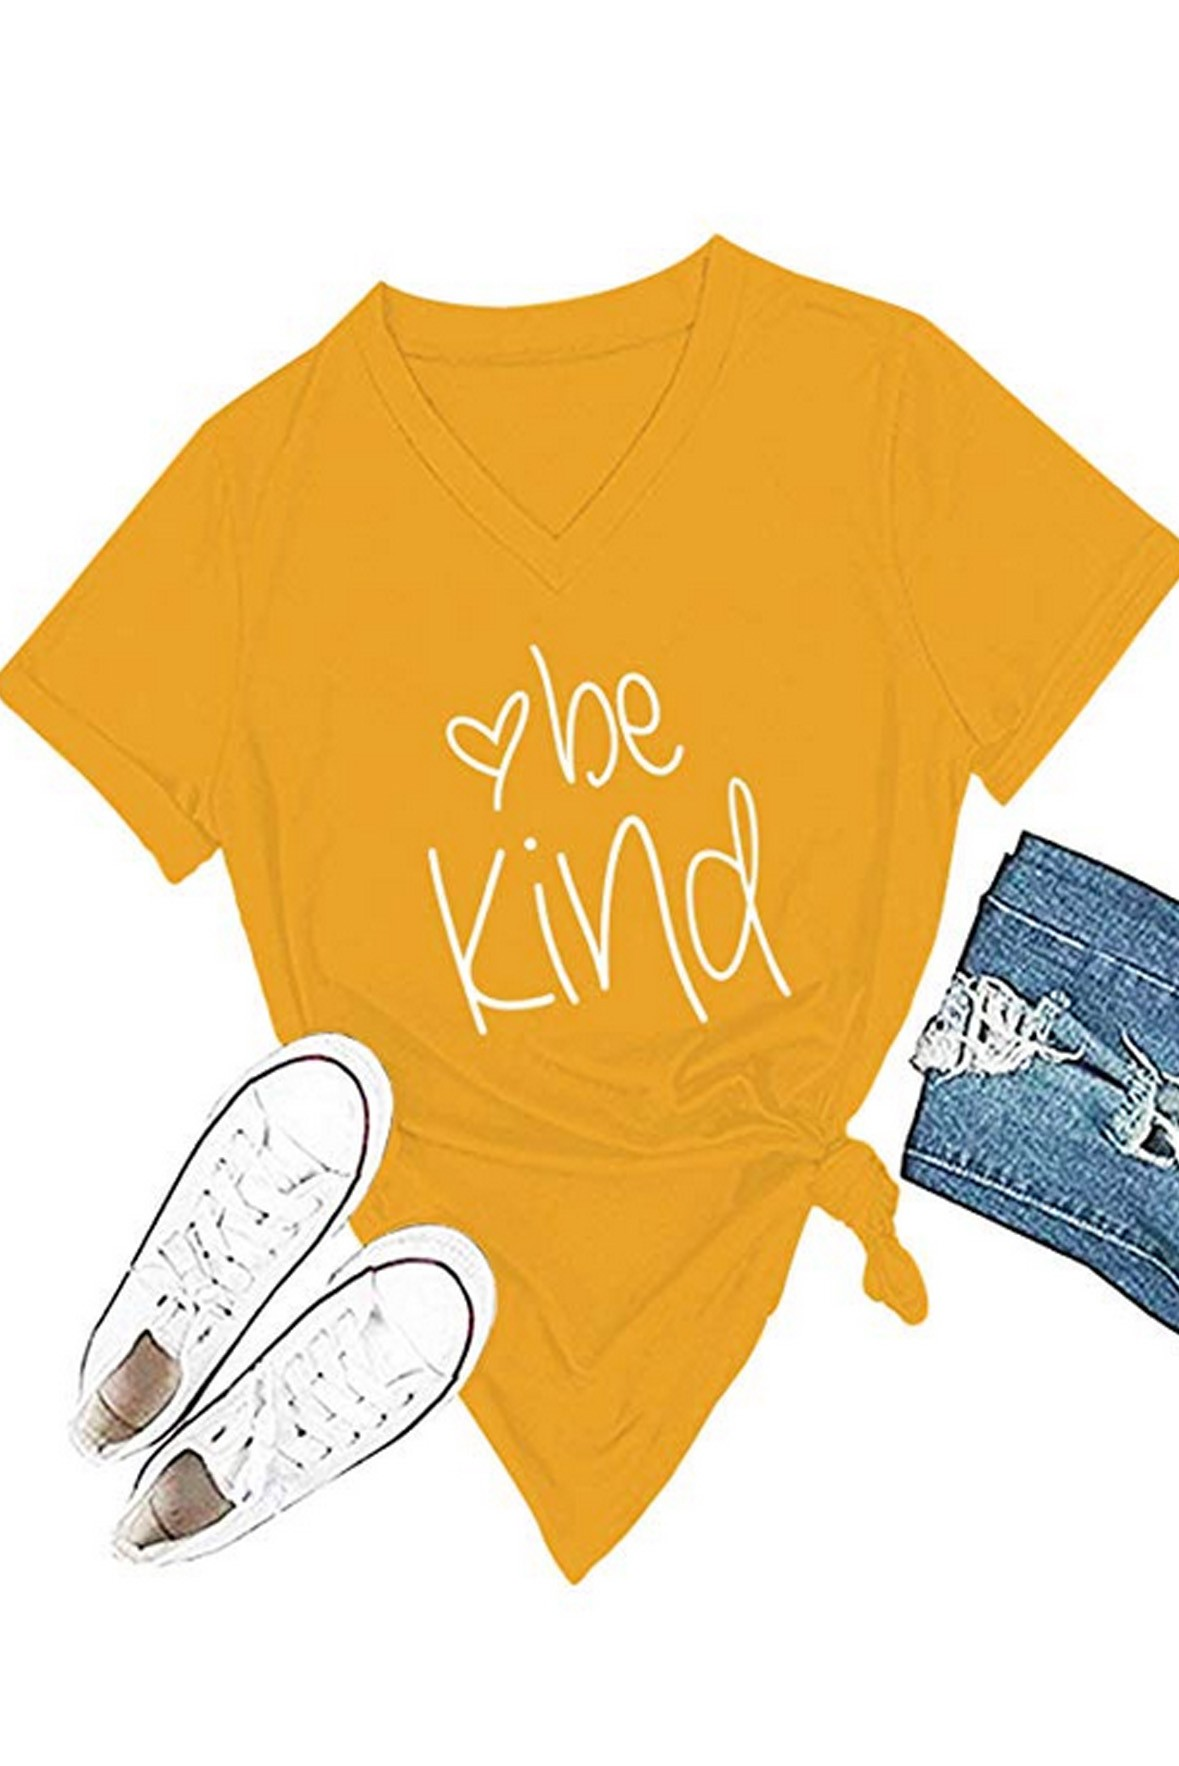 Be kind yellow tee